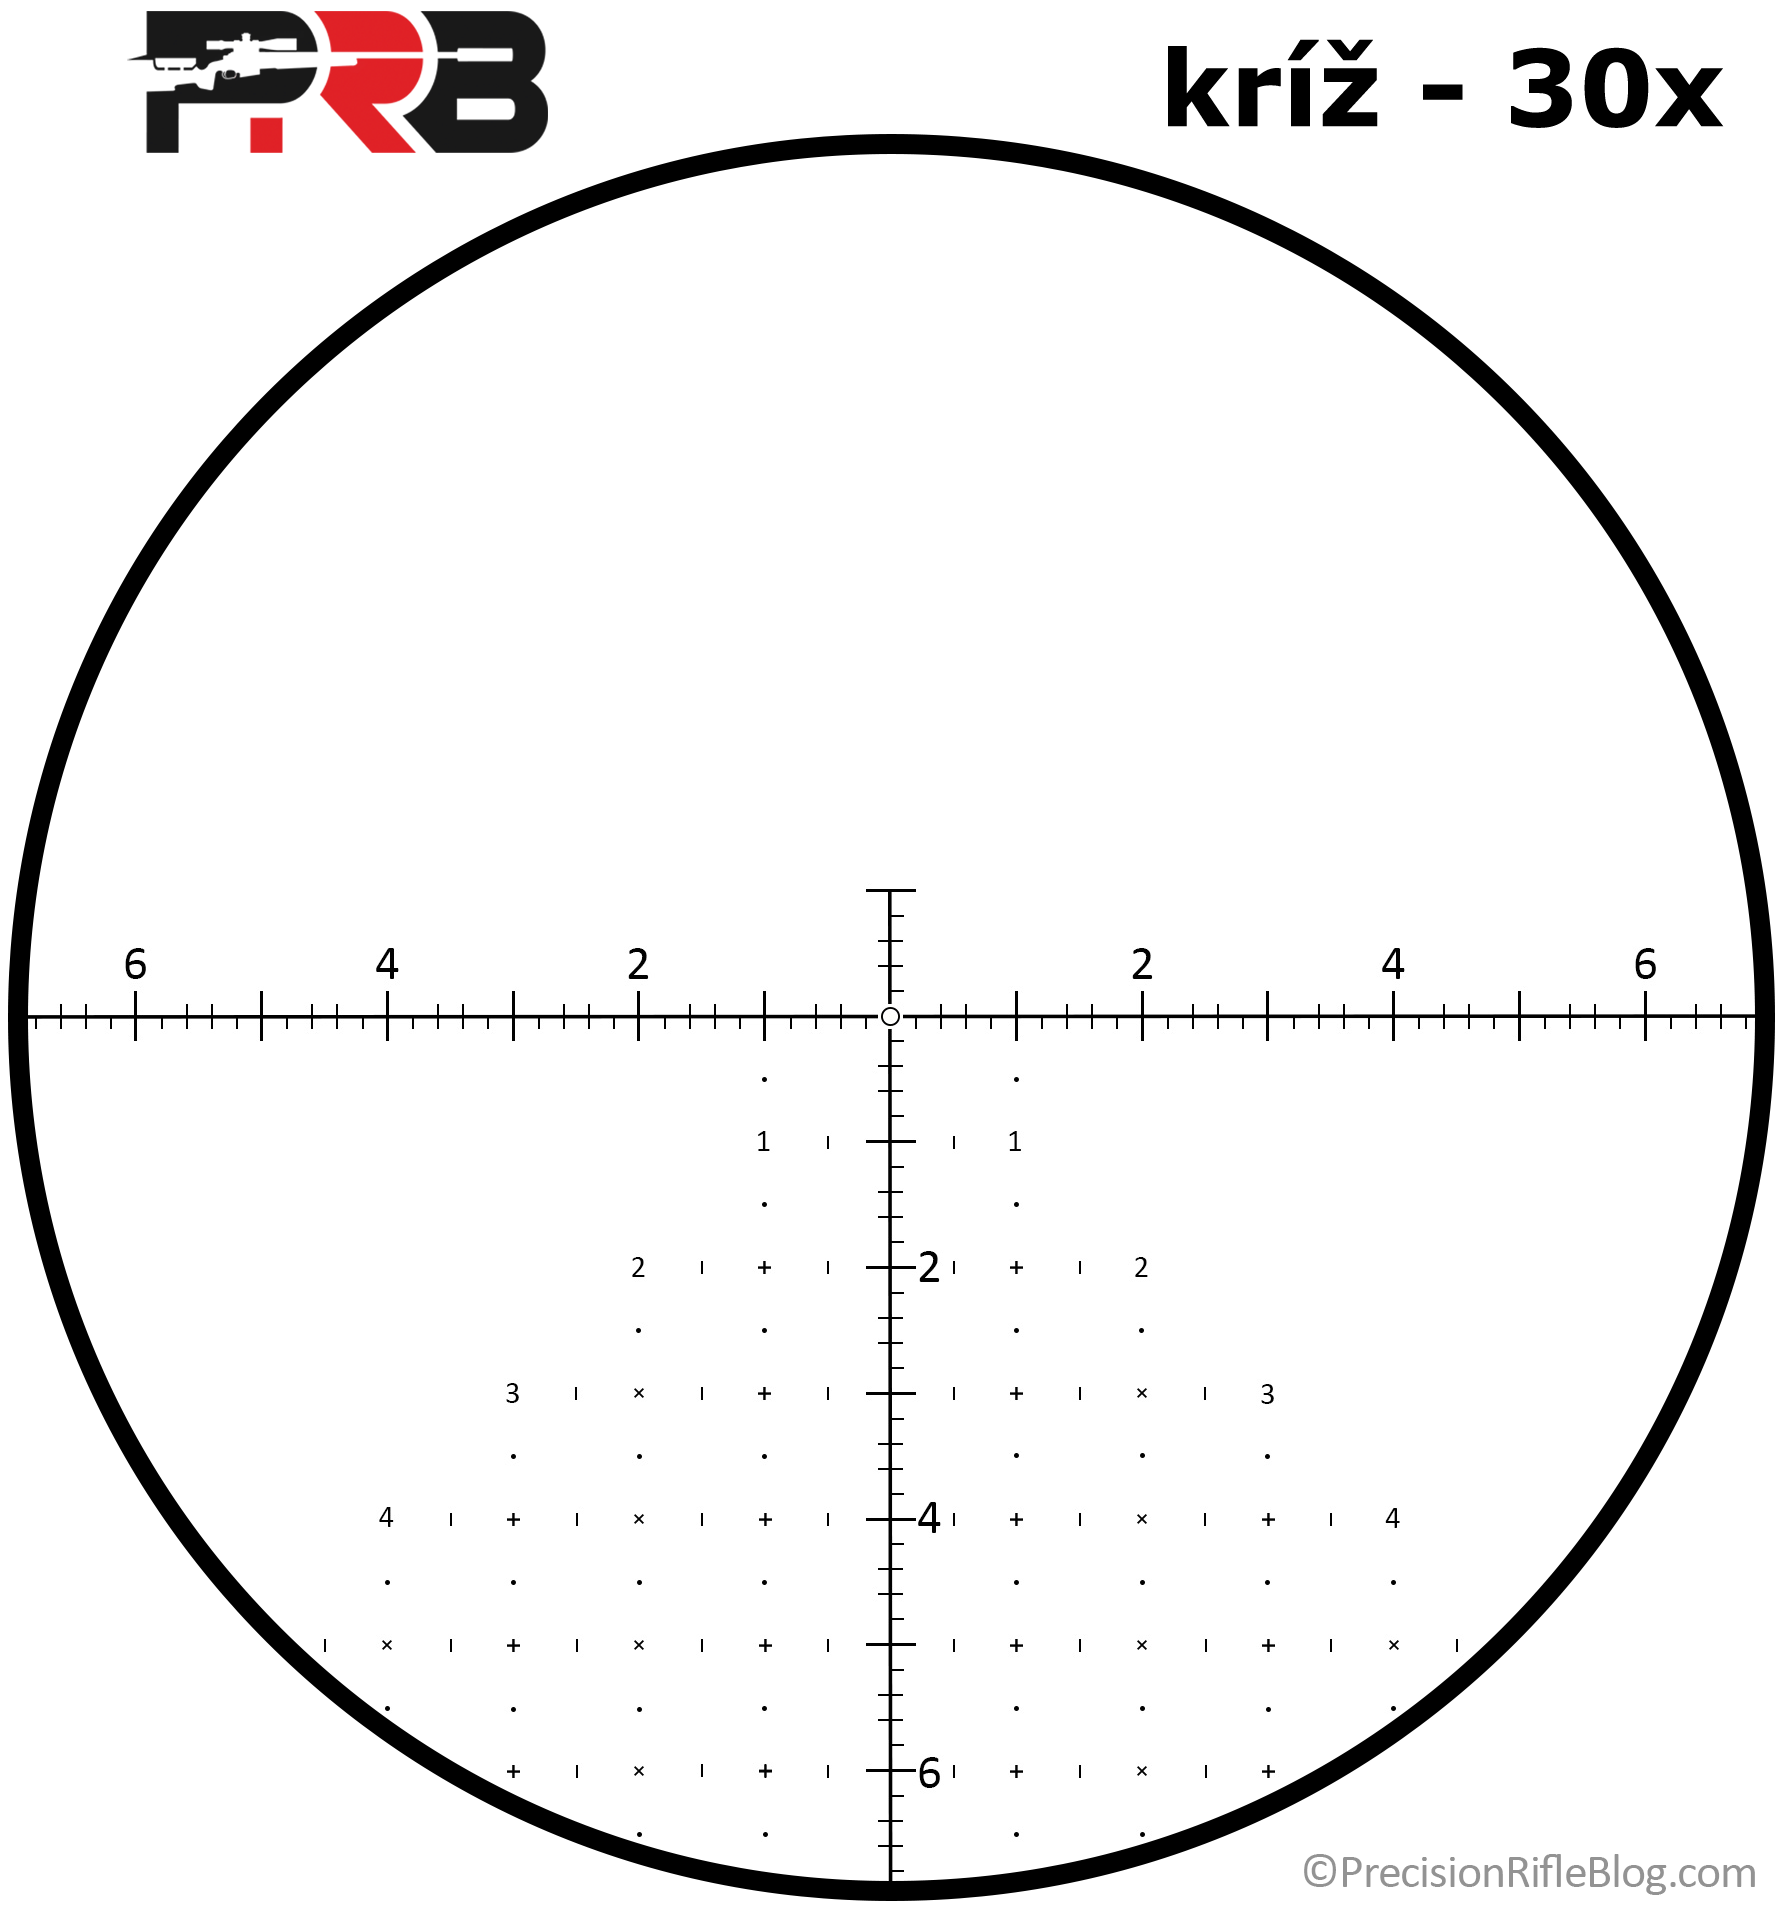 PRB-Reticle-at-30x-Magnification.png